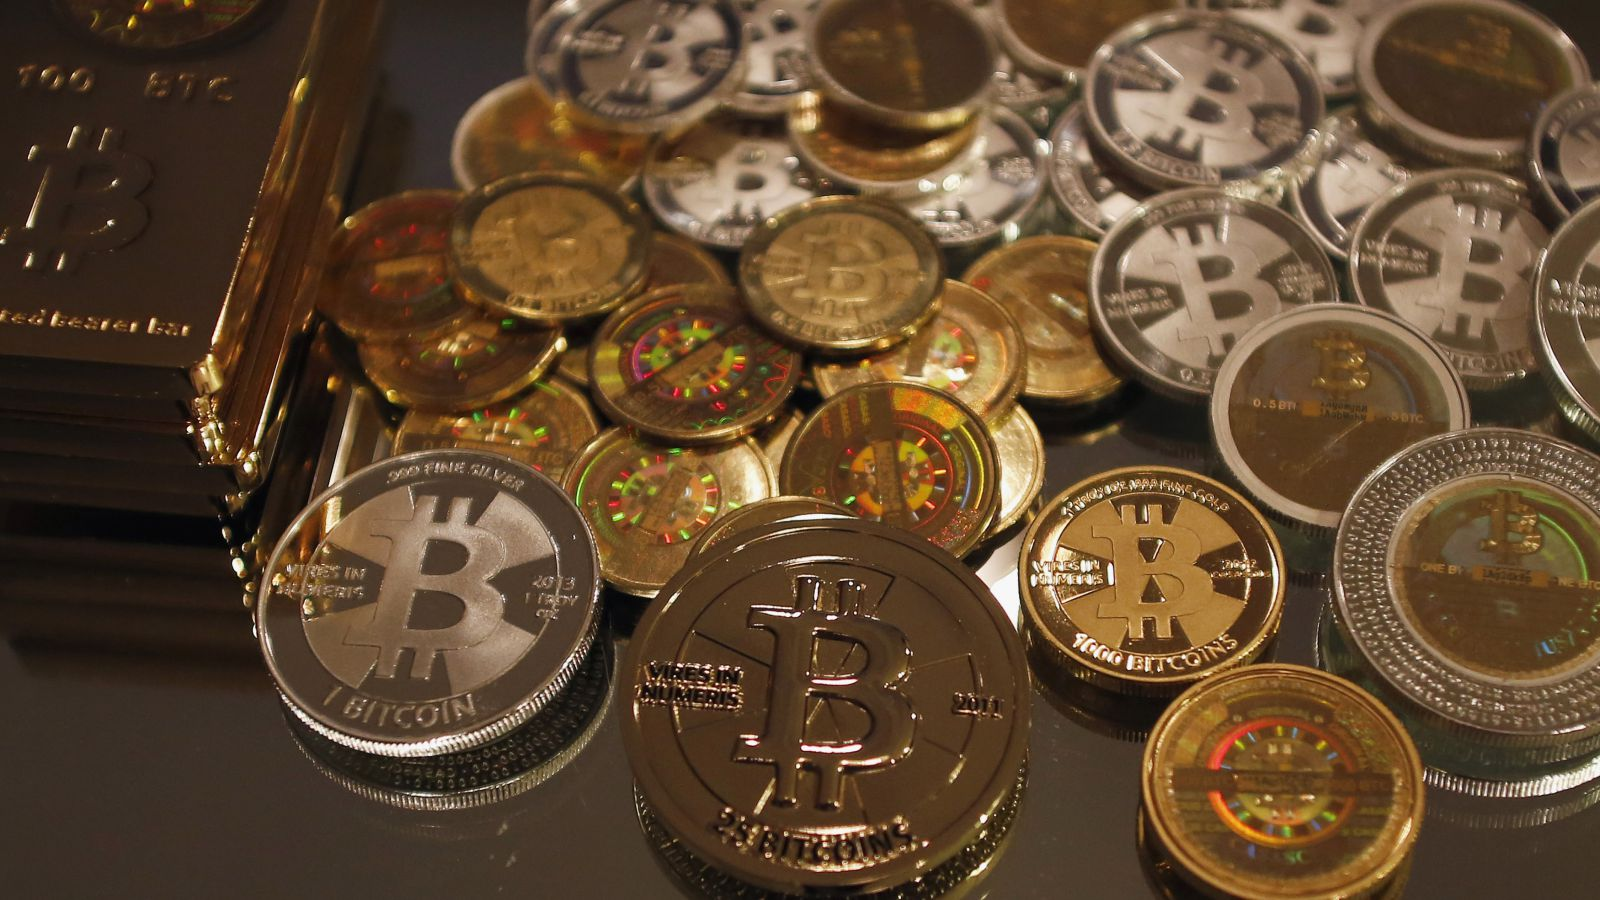 Some of Bitcoin enthusiast Mike Caldwell's coins are pictured at his office in Sandy, Utah, September 17, 2013.Caldwell produces physical coins Bitcoins, which have been around since 2008, and have become a form of electronic money that can be exchanged without using traditional banking or money transfer systems. Bitcoins, touted by some experts as the future of money, gained in prominence during Europe's financial crisis as more people questioned the safety of holding their cash in the bank.